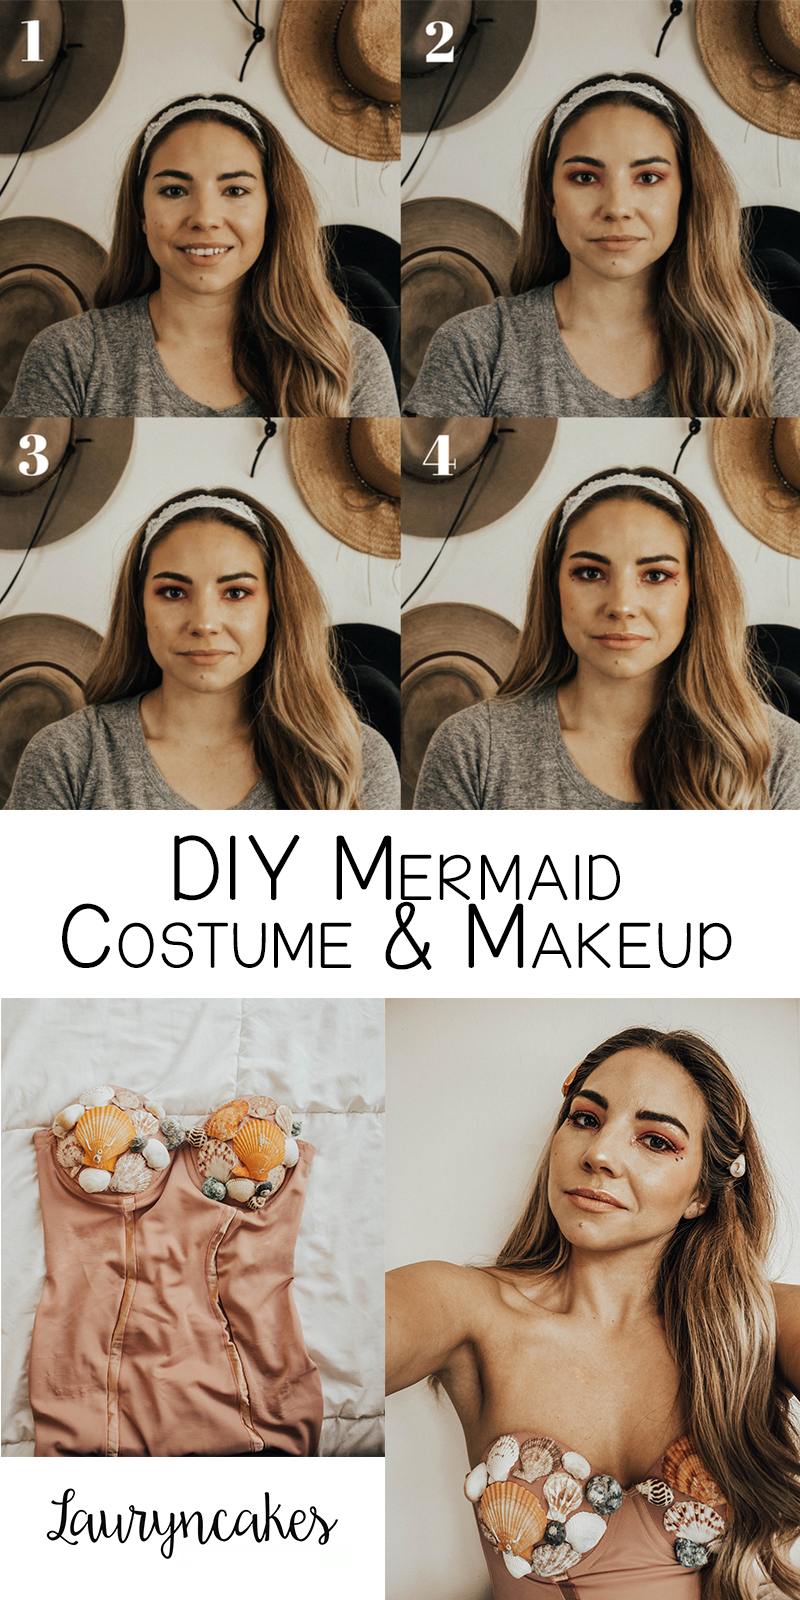 tutorial on a mermaid costume for halloween, how to mermaid look, beauty blogger